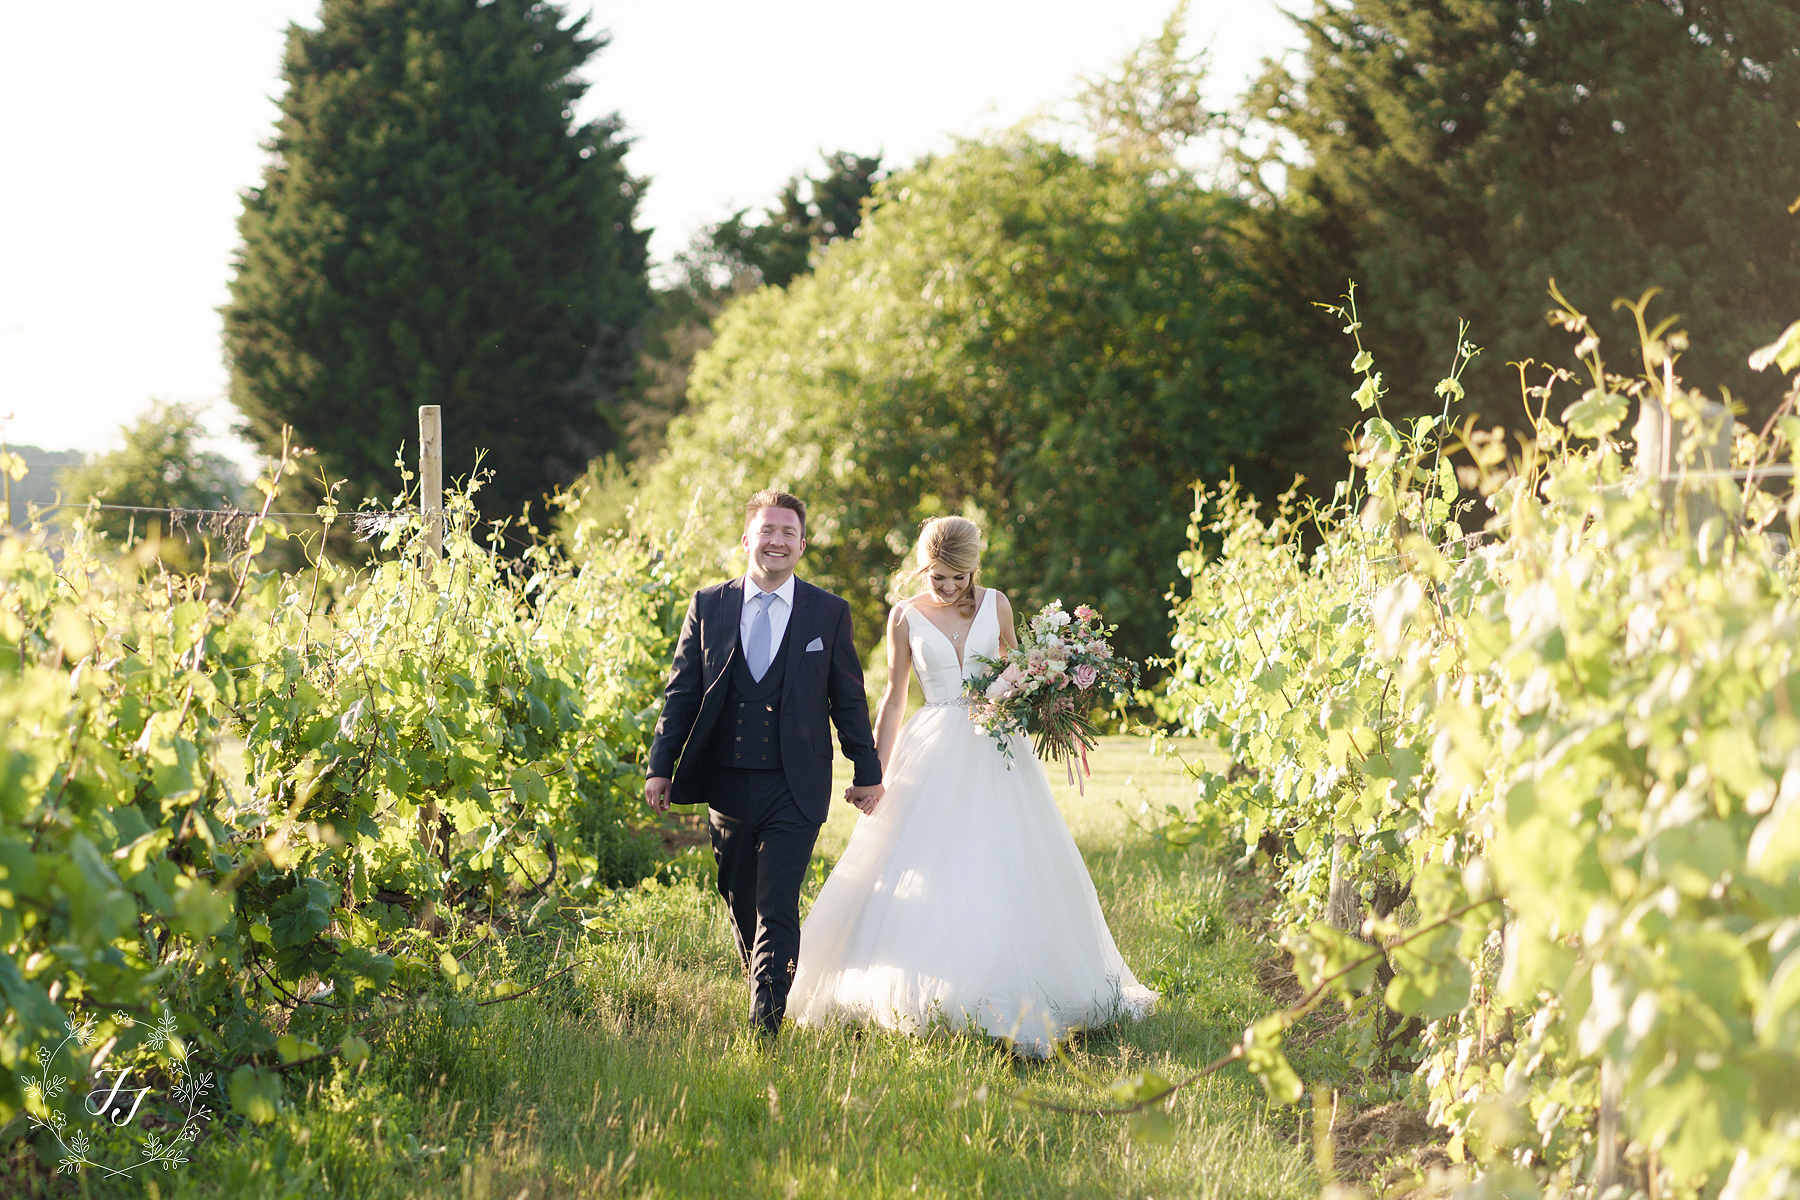 wedding photography at Newhall vineyard, bride and groom walk through the vineyard